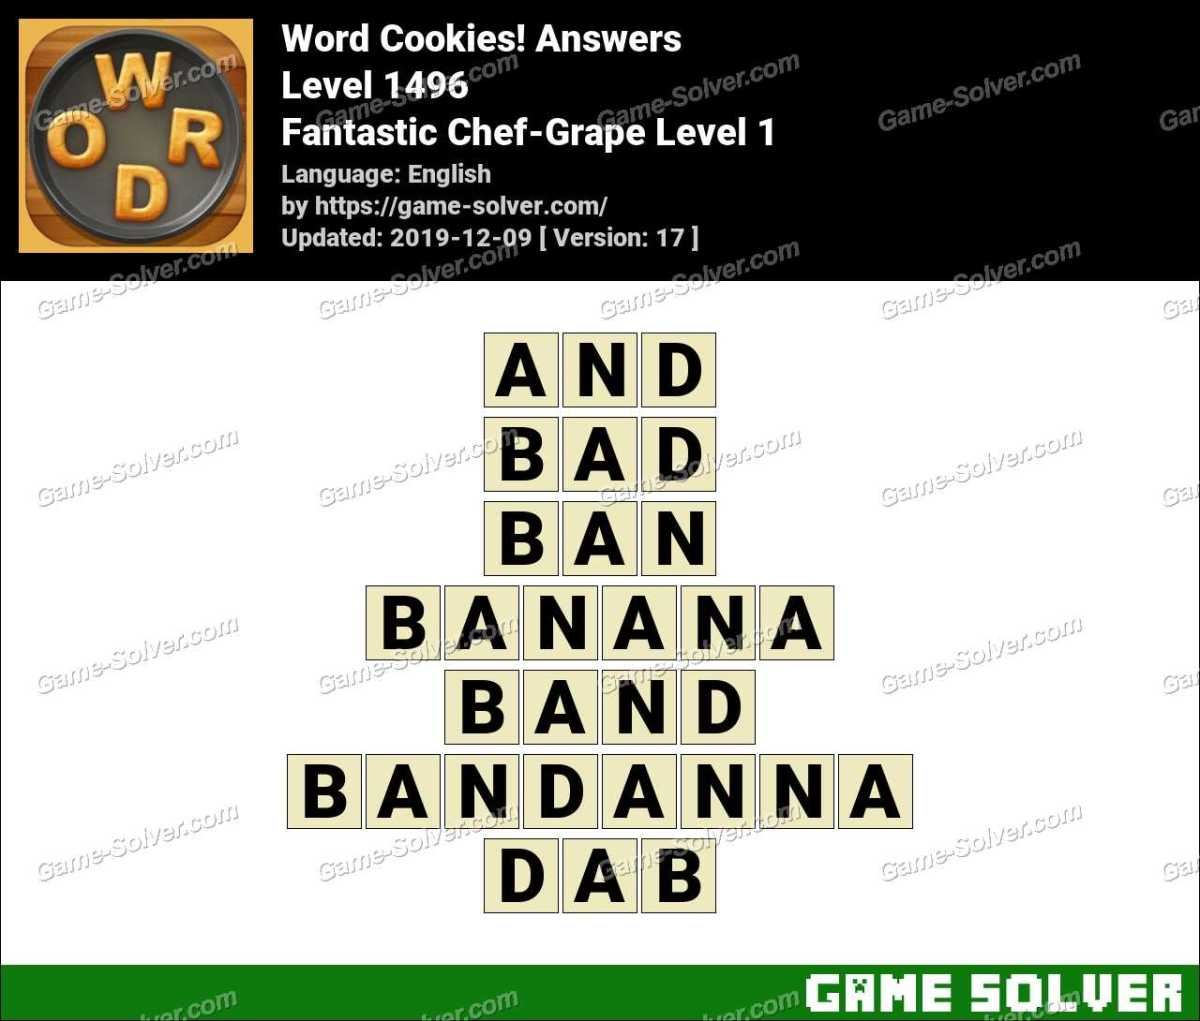 Word Cookies Fantastic Chef-Grape Level 1 Answers